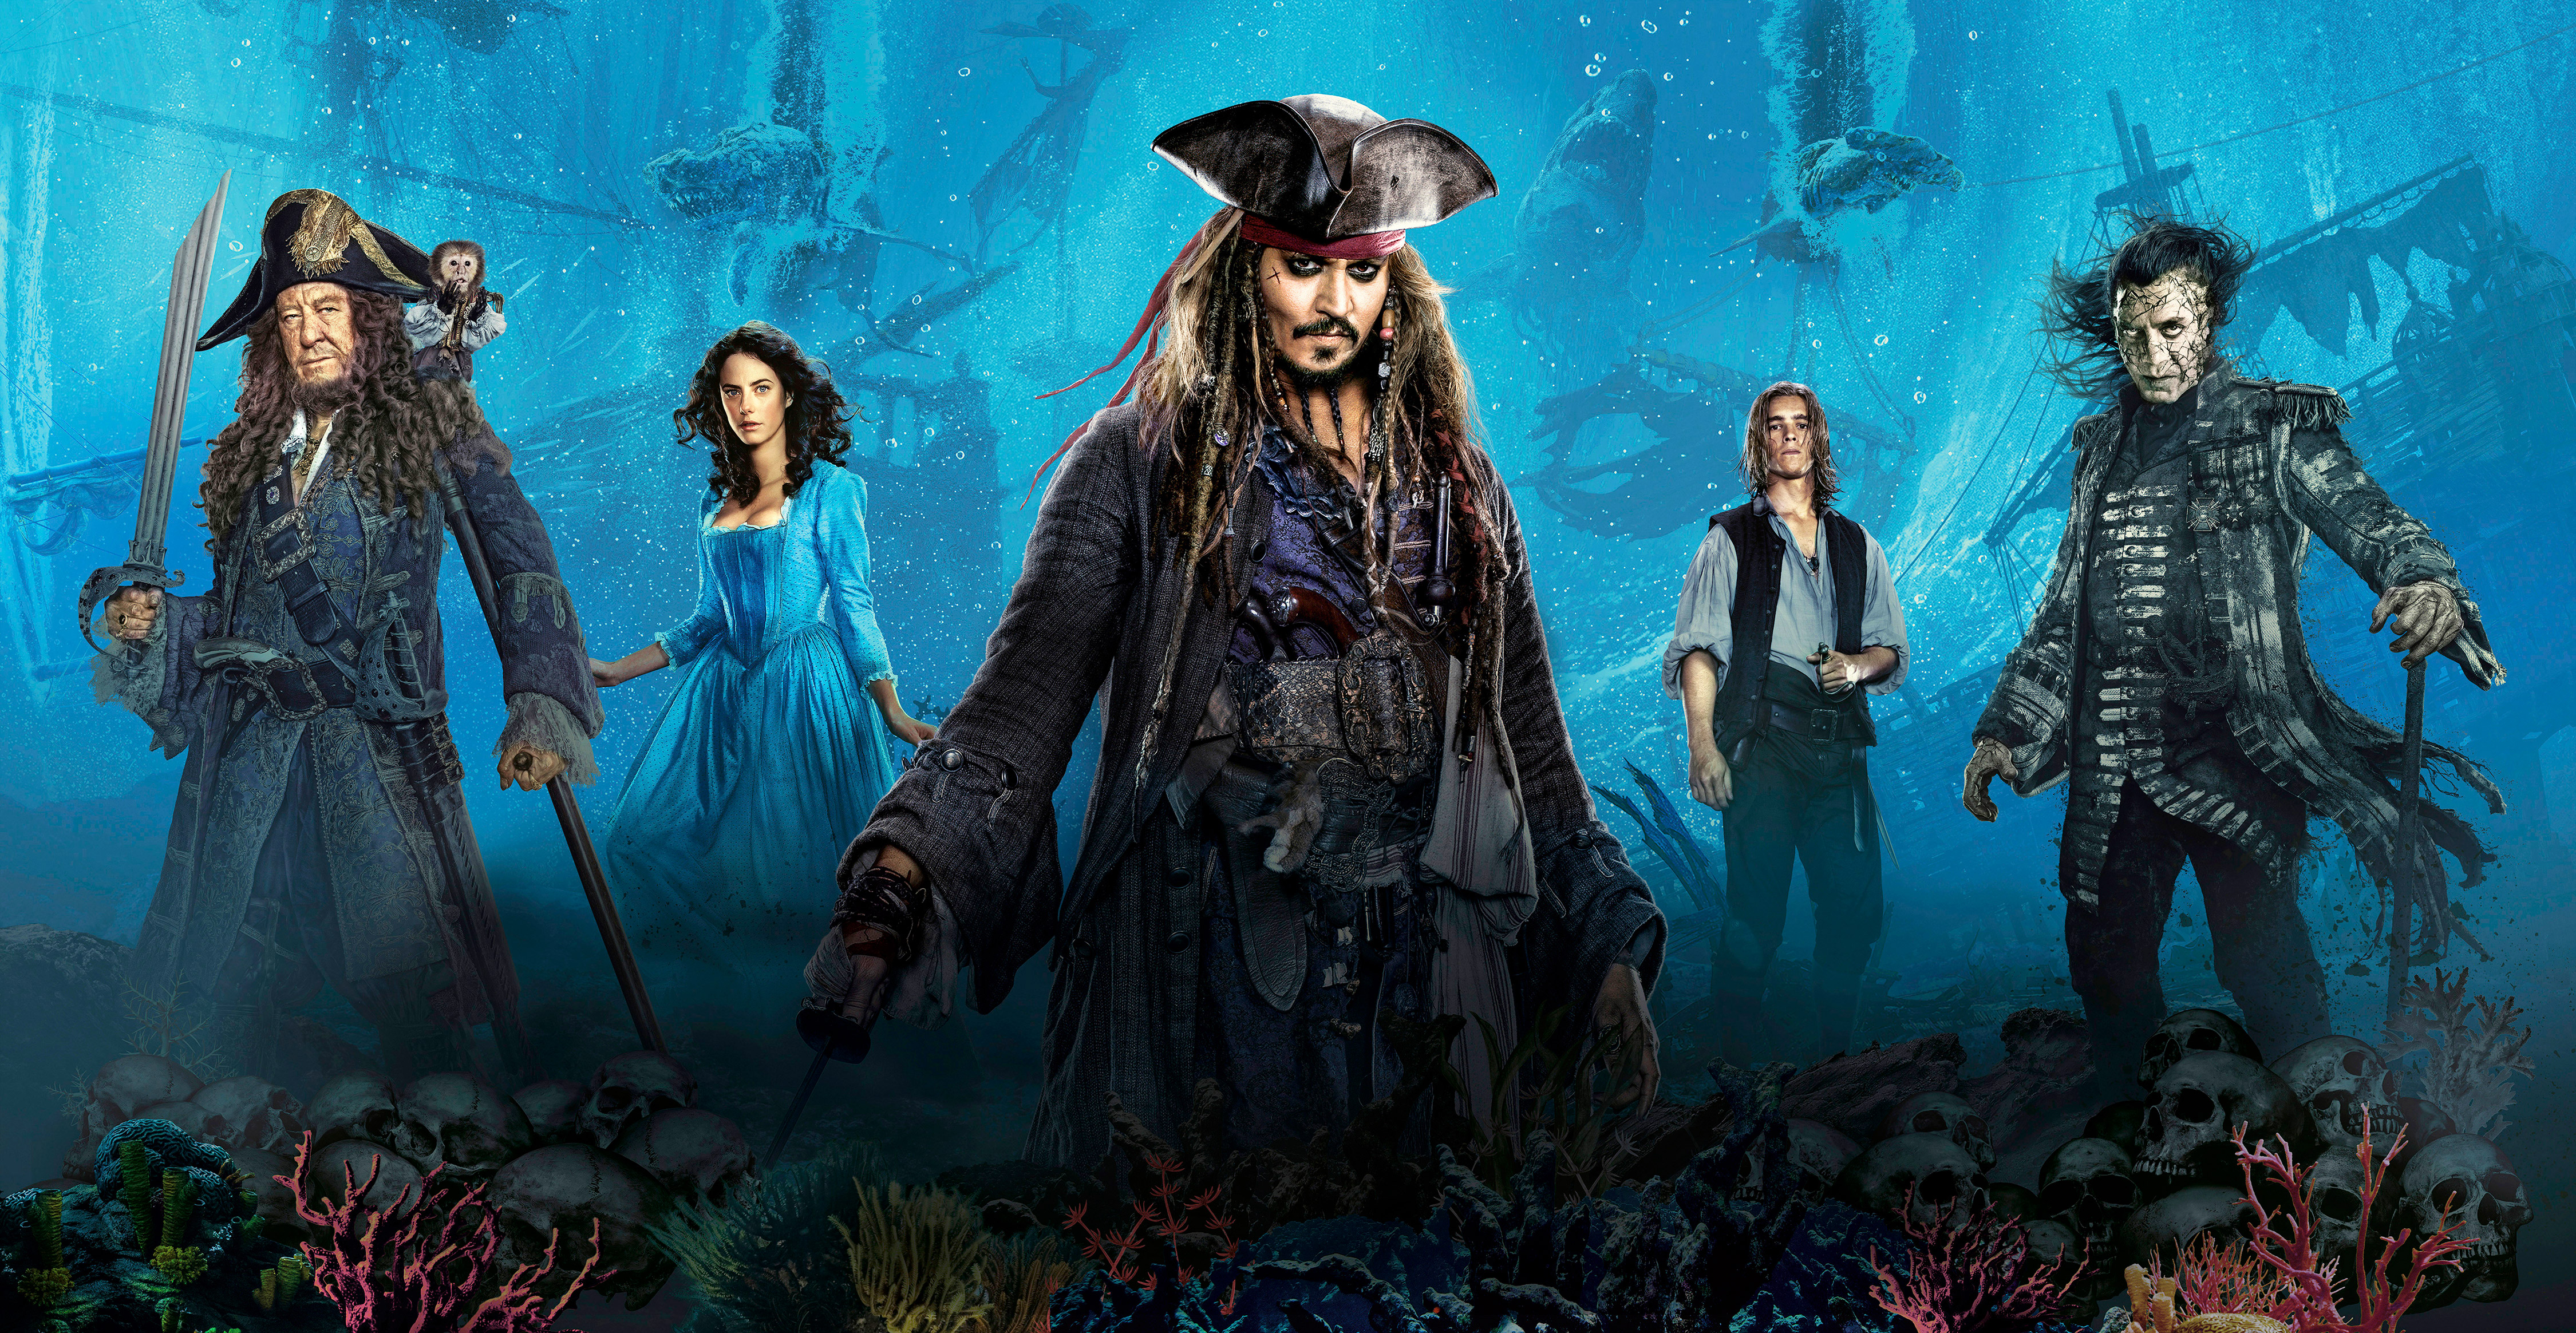 Pirates Of The Caribbean 5 Wallpapers Ship: Pirates Of The Caribbean 5 Wallpaper (by TheNoblePirate